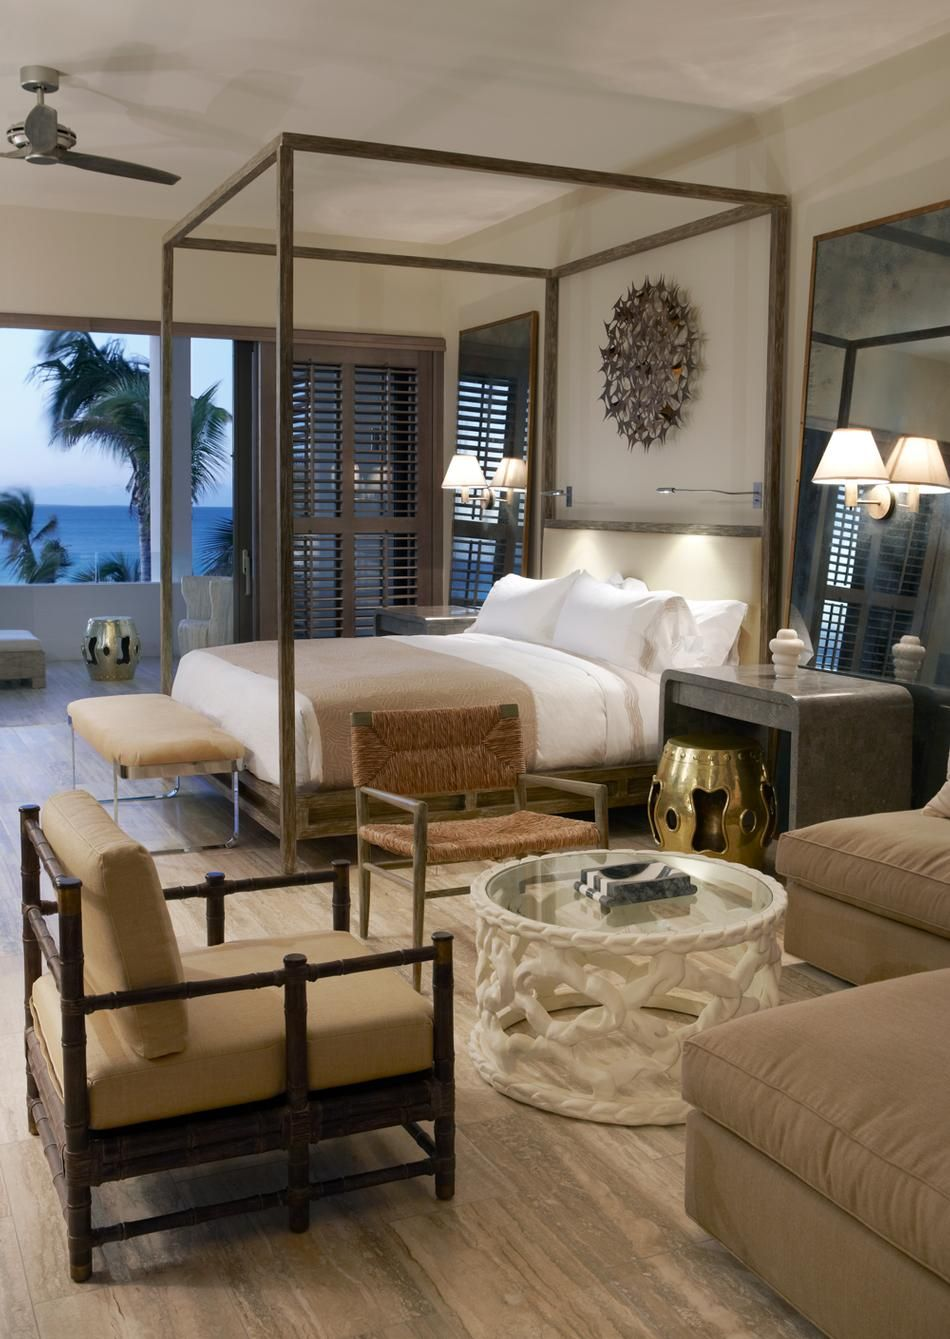 Viceroy anguilla caribbean designer resort surrounded by white sandy beaches